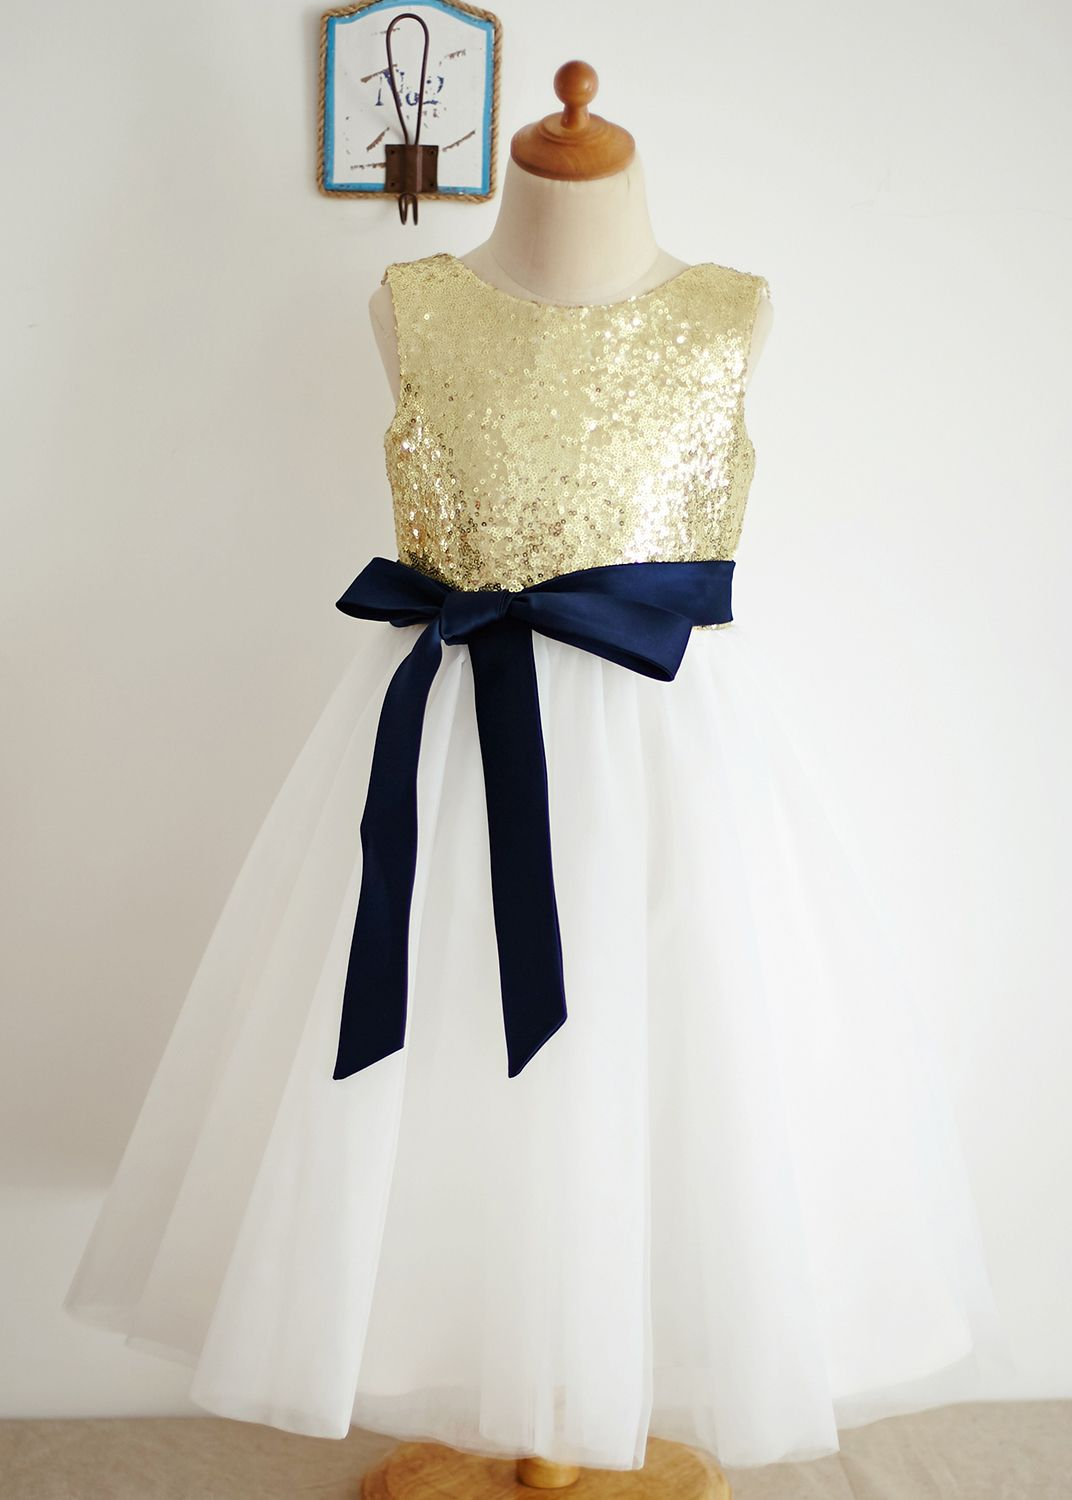 a57c3b273 Just love the deep v back design.We use satin,sequin and tulle to make this  dress.The listed color is gold top,ivory bottom with navy blue sash.